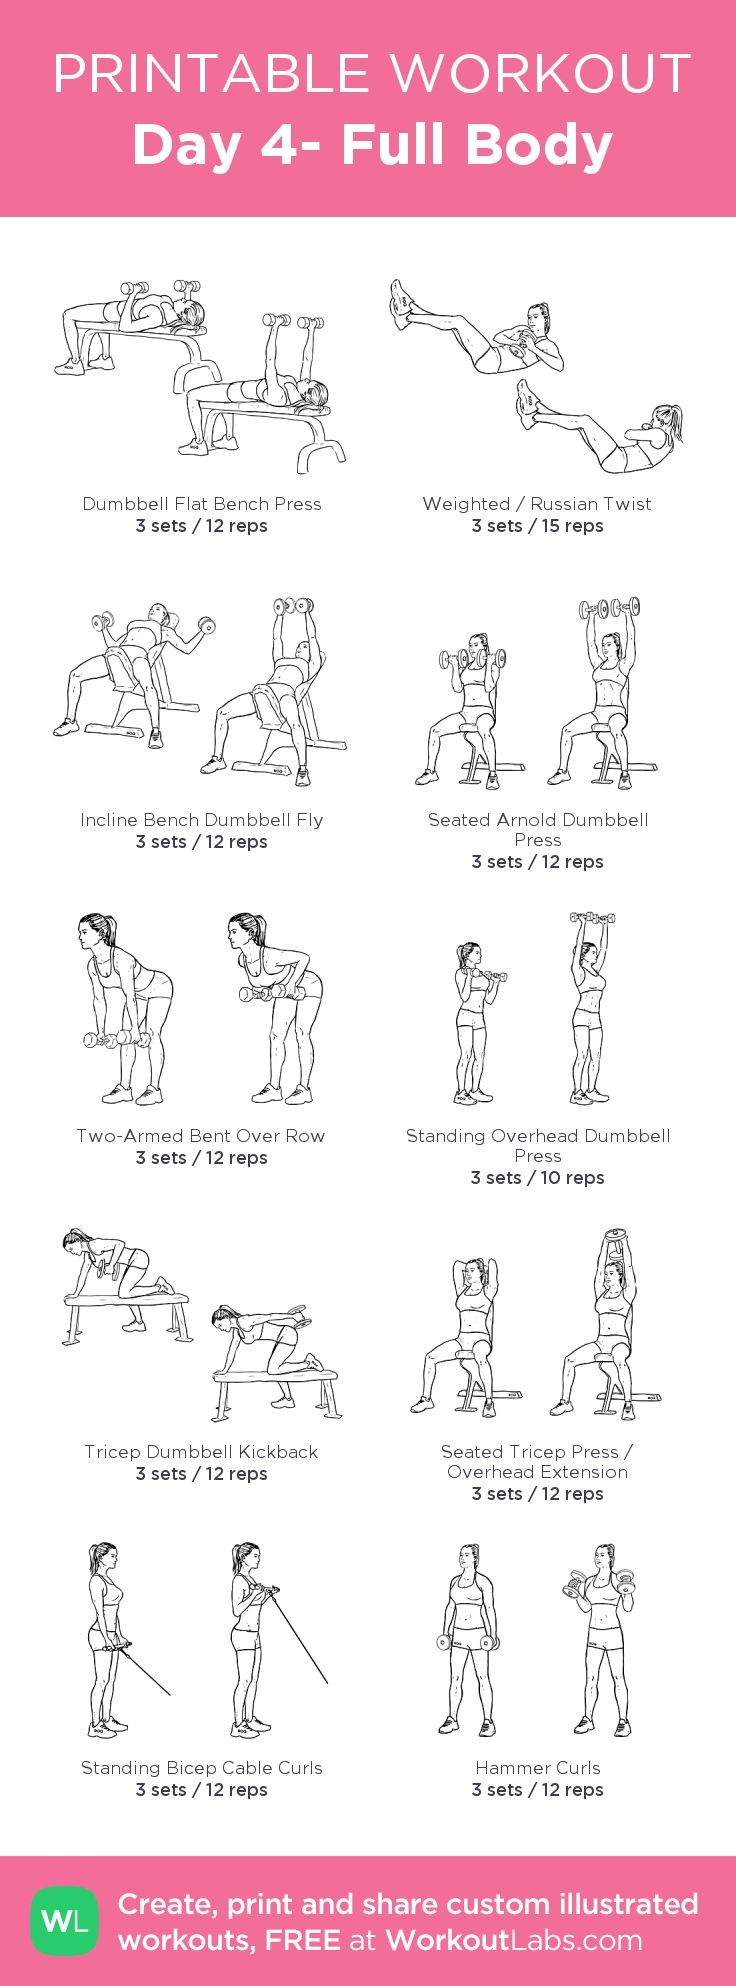 Day 4 Full Body My Custom Workout Created At